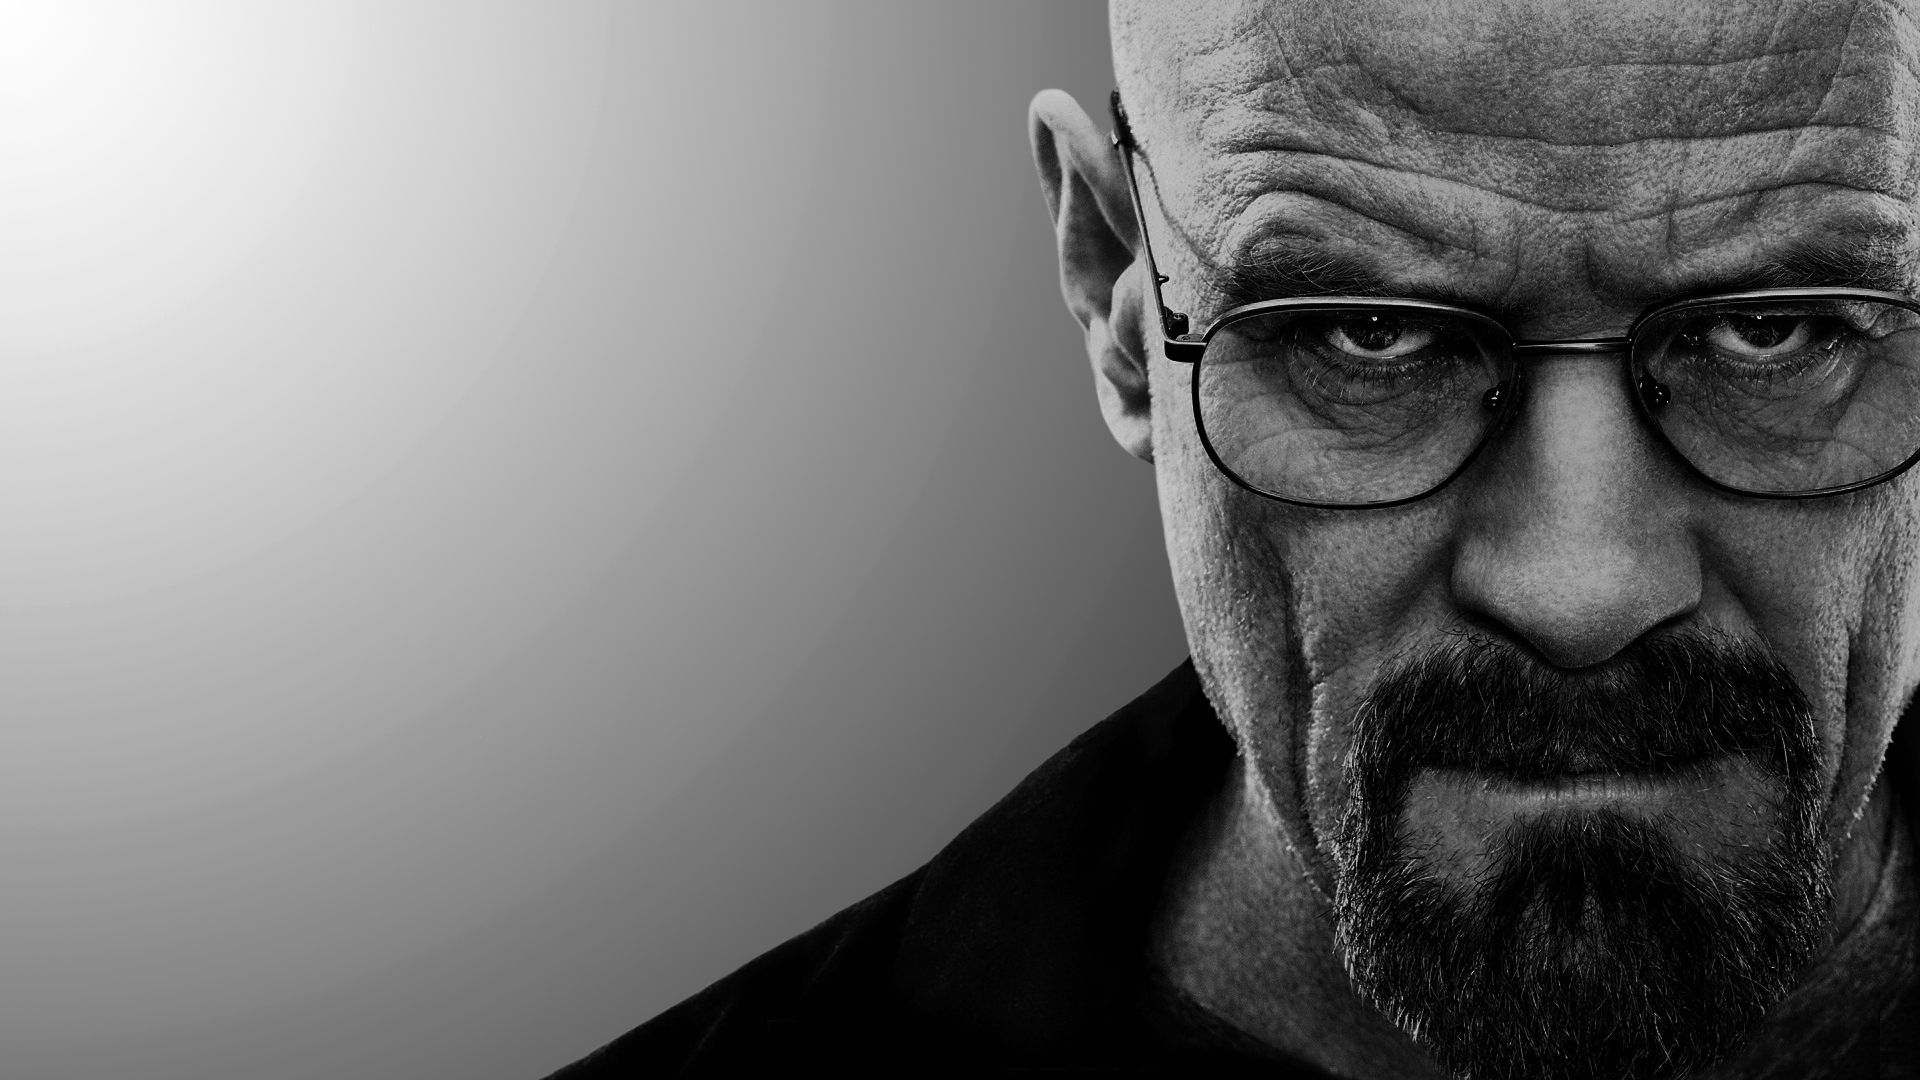 Download Breaking Bad Wallpapers High Quality Resolution For Widescreen Wallpaper Subwallpaper Breaking Bad Breaking Bad Tattoo Widescreen Wallpaper